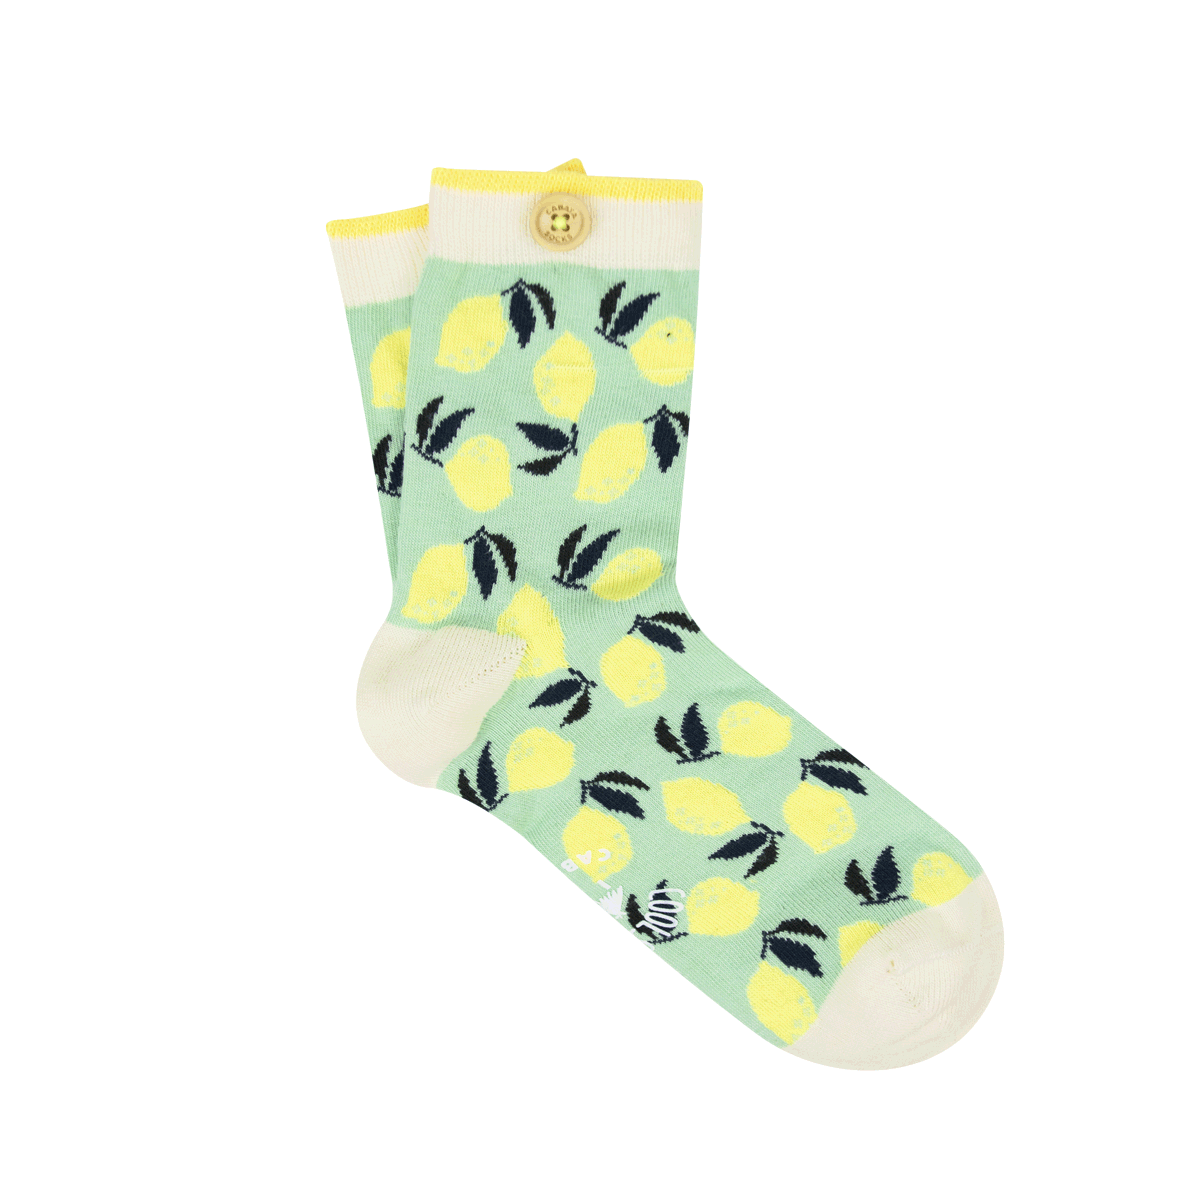 unloosable-socks-button-women-36-41-socks20-este-gre